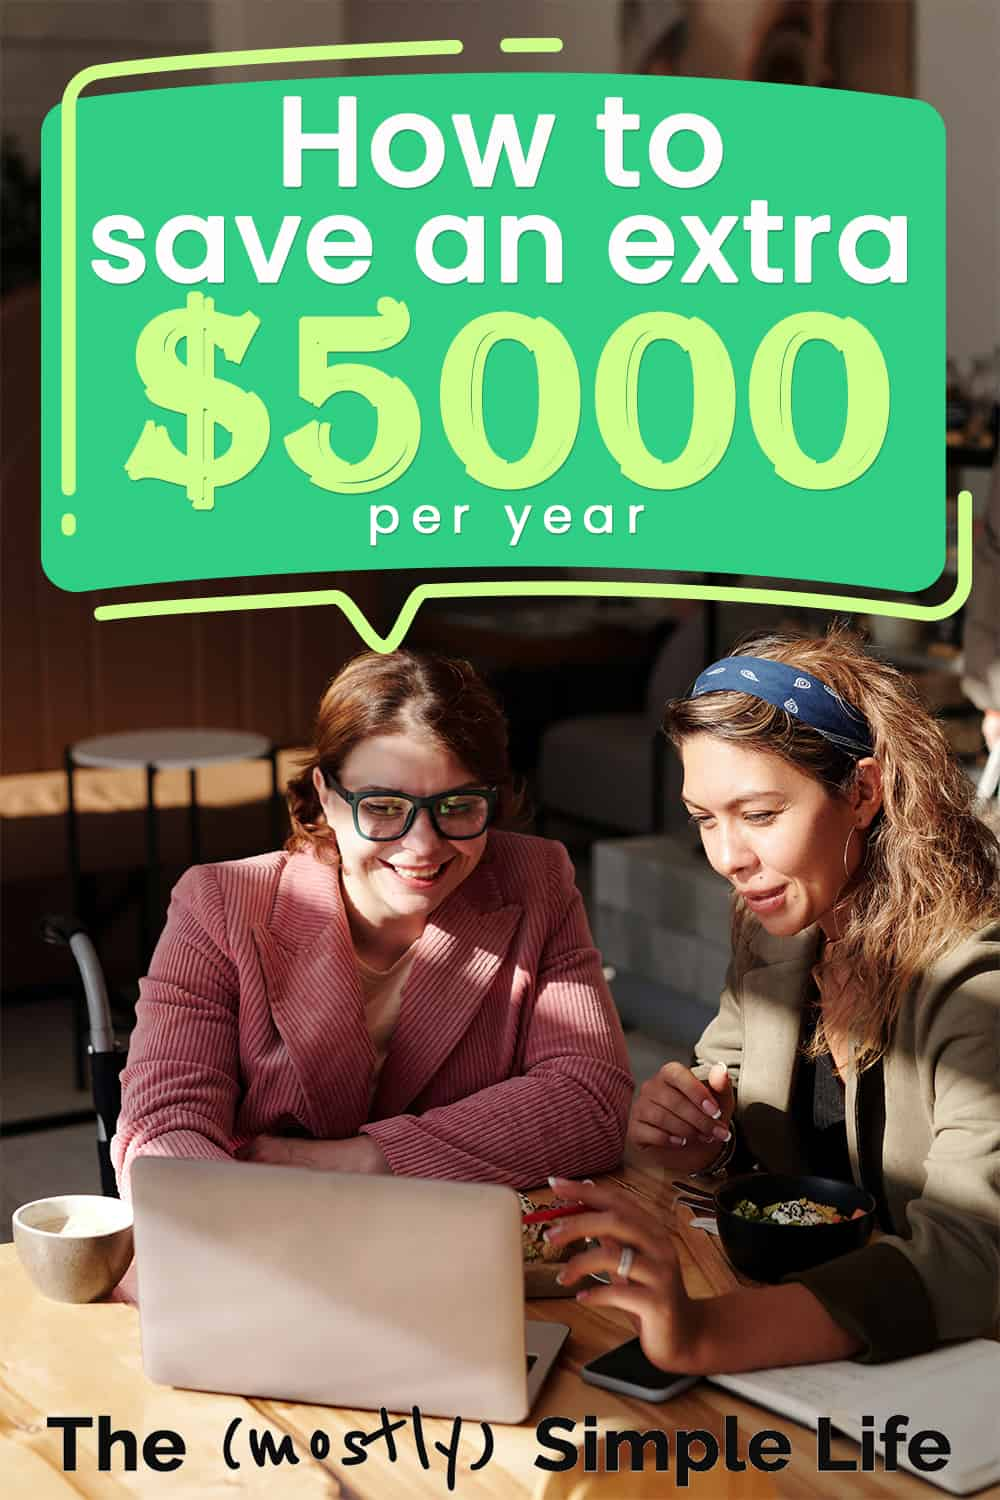 Money Saving Tips: How to Save an Extra $5,000 per Year